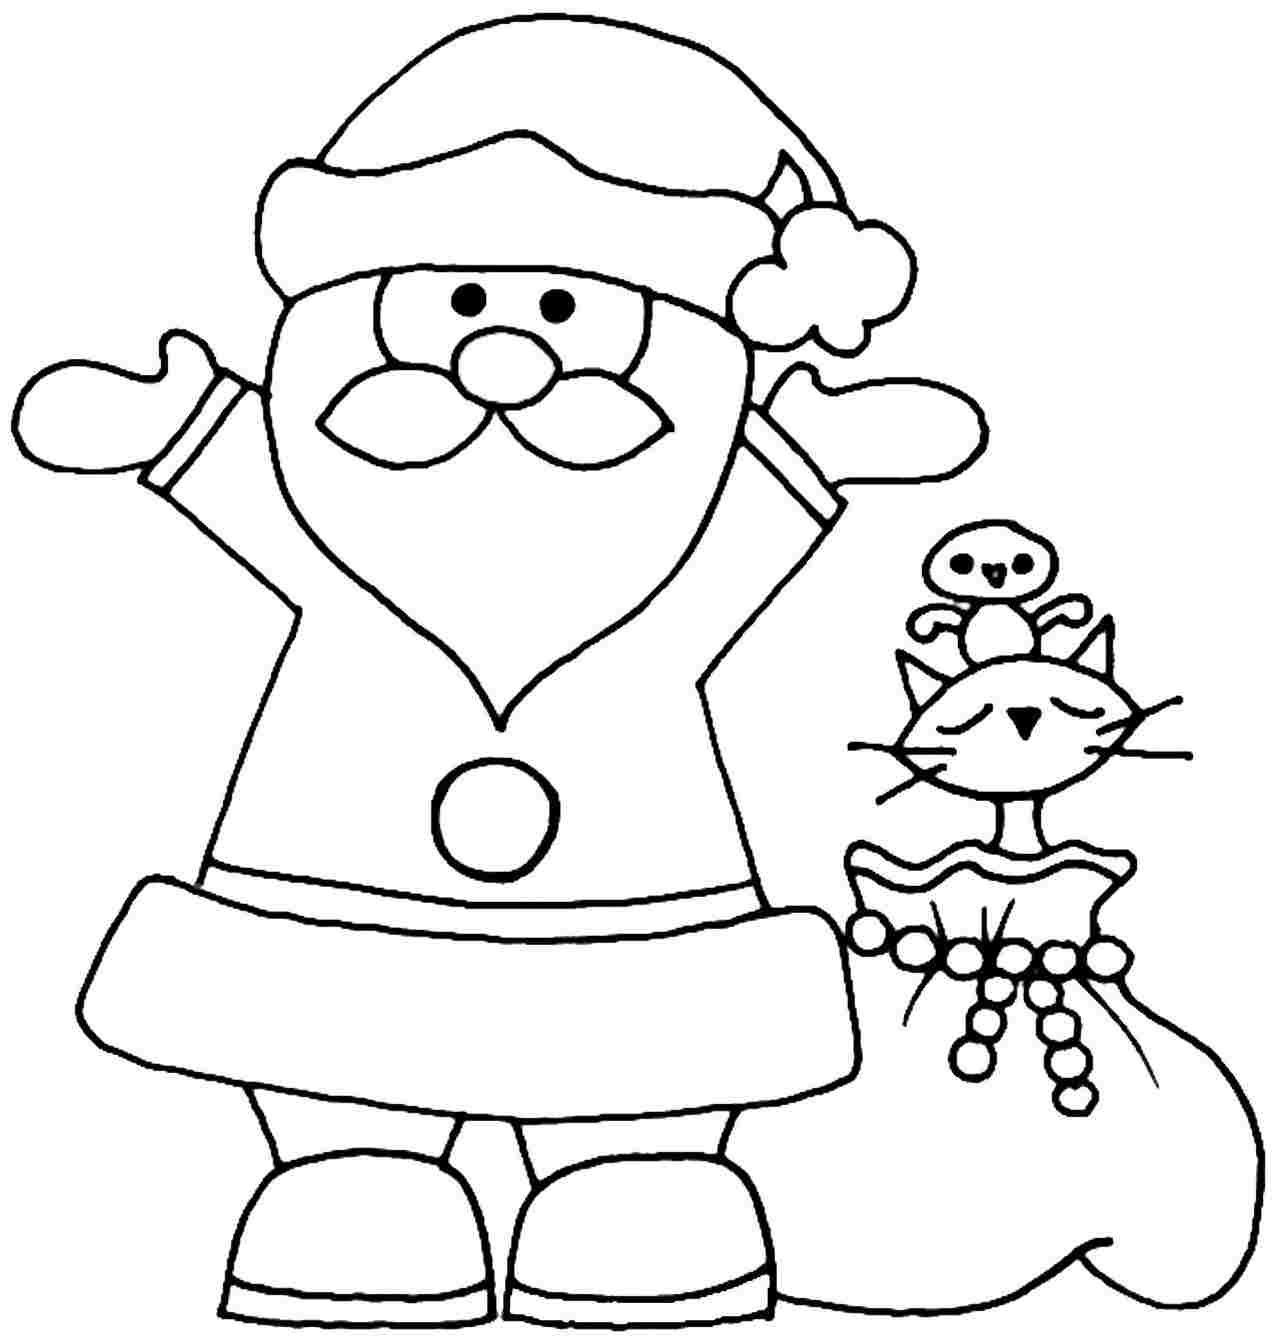 Santa Claus Christmas Tree Coloring Pages With Pin By Shreya Thakur On Free Pinterest